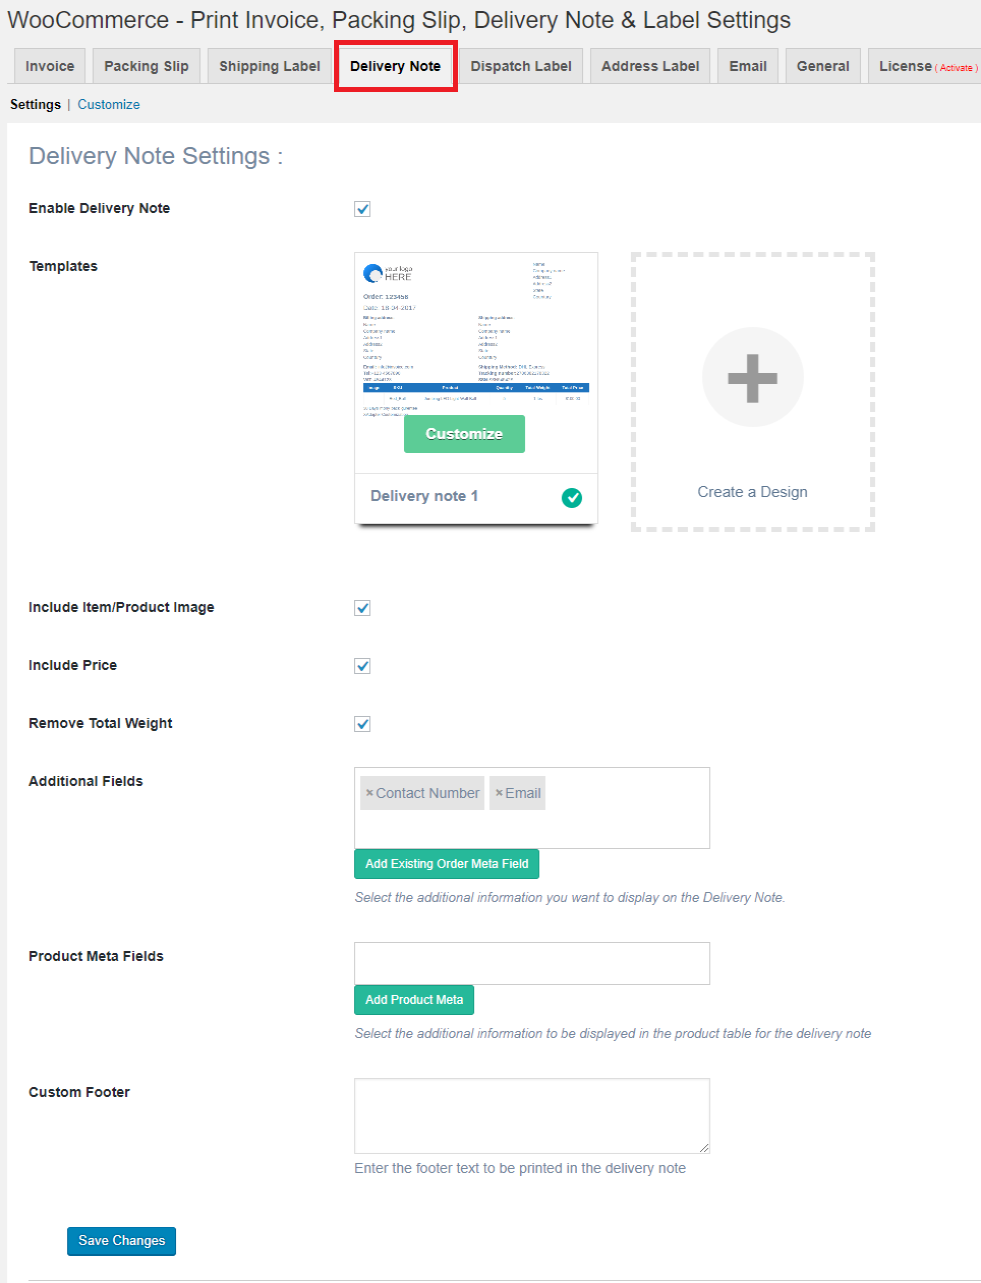 delivery note settings